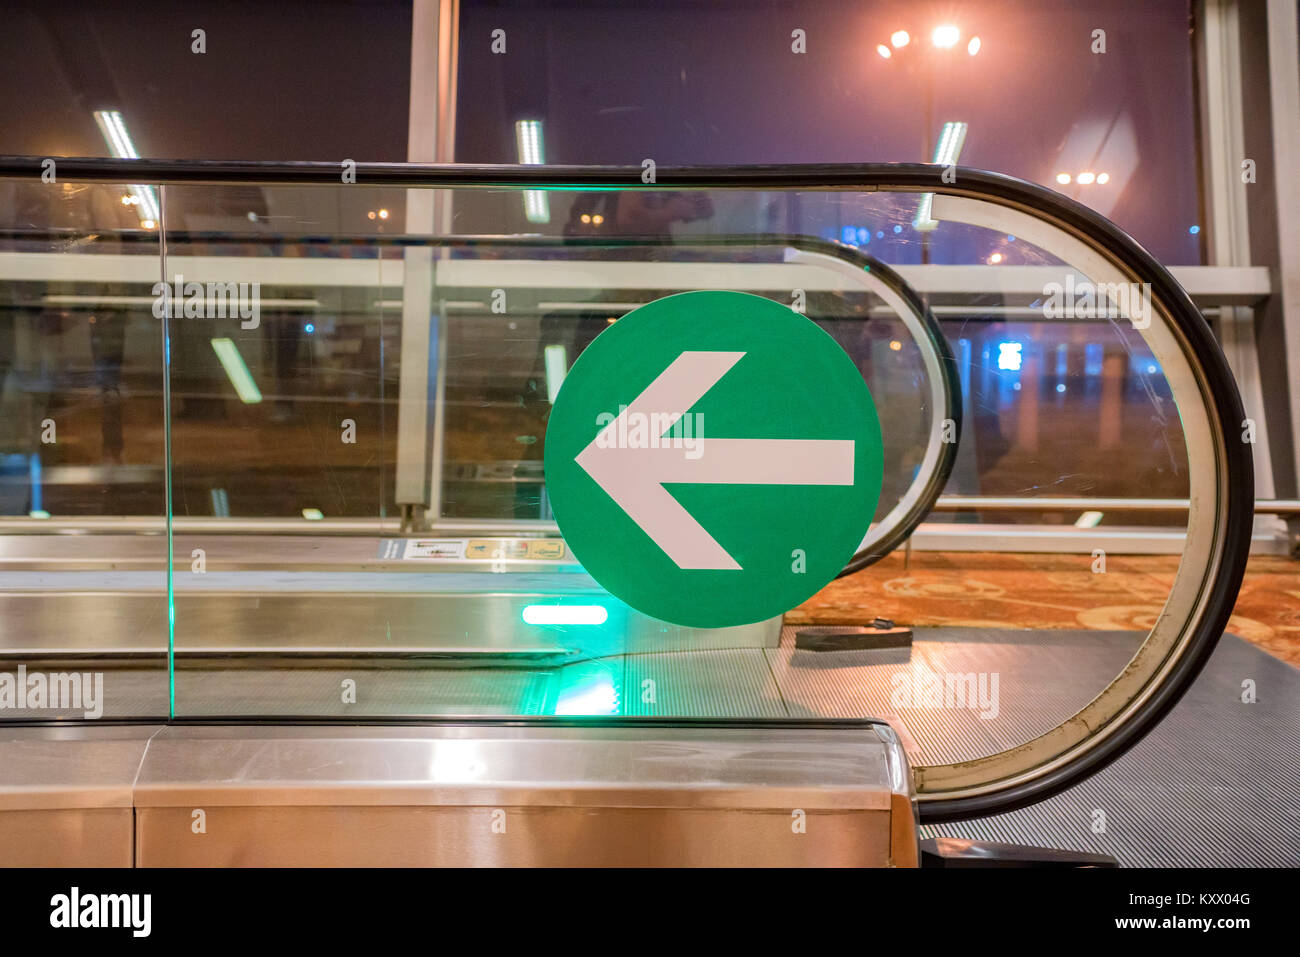 Green arrow sign on airport travelator - Stock Image